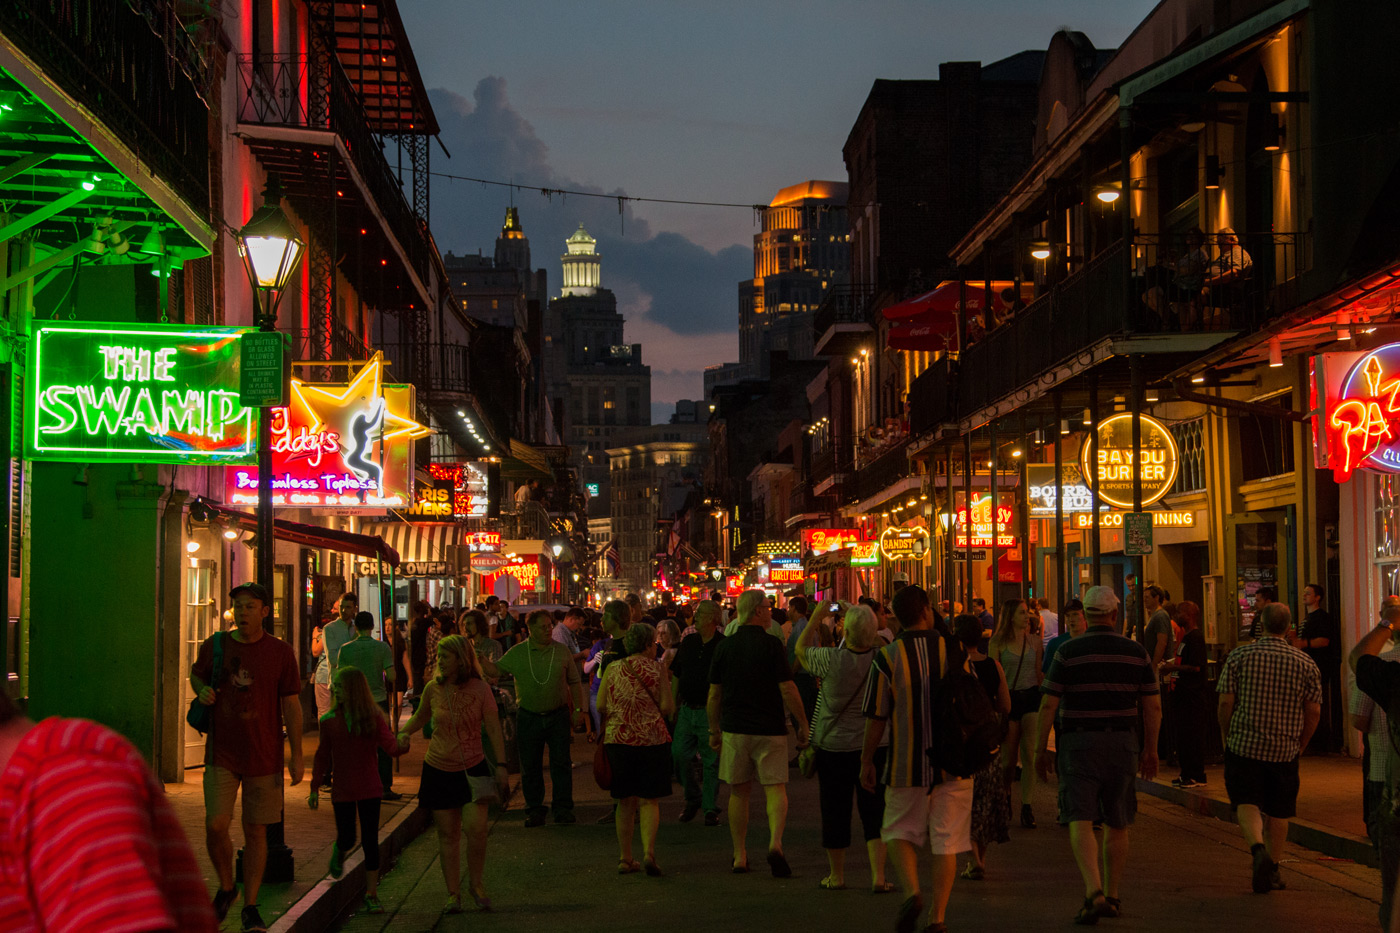 Bourbon street nightlife